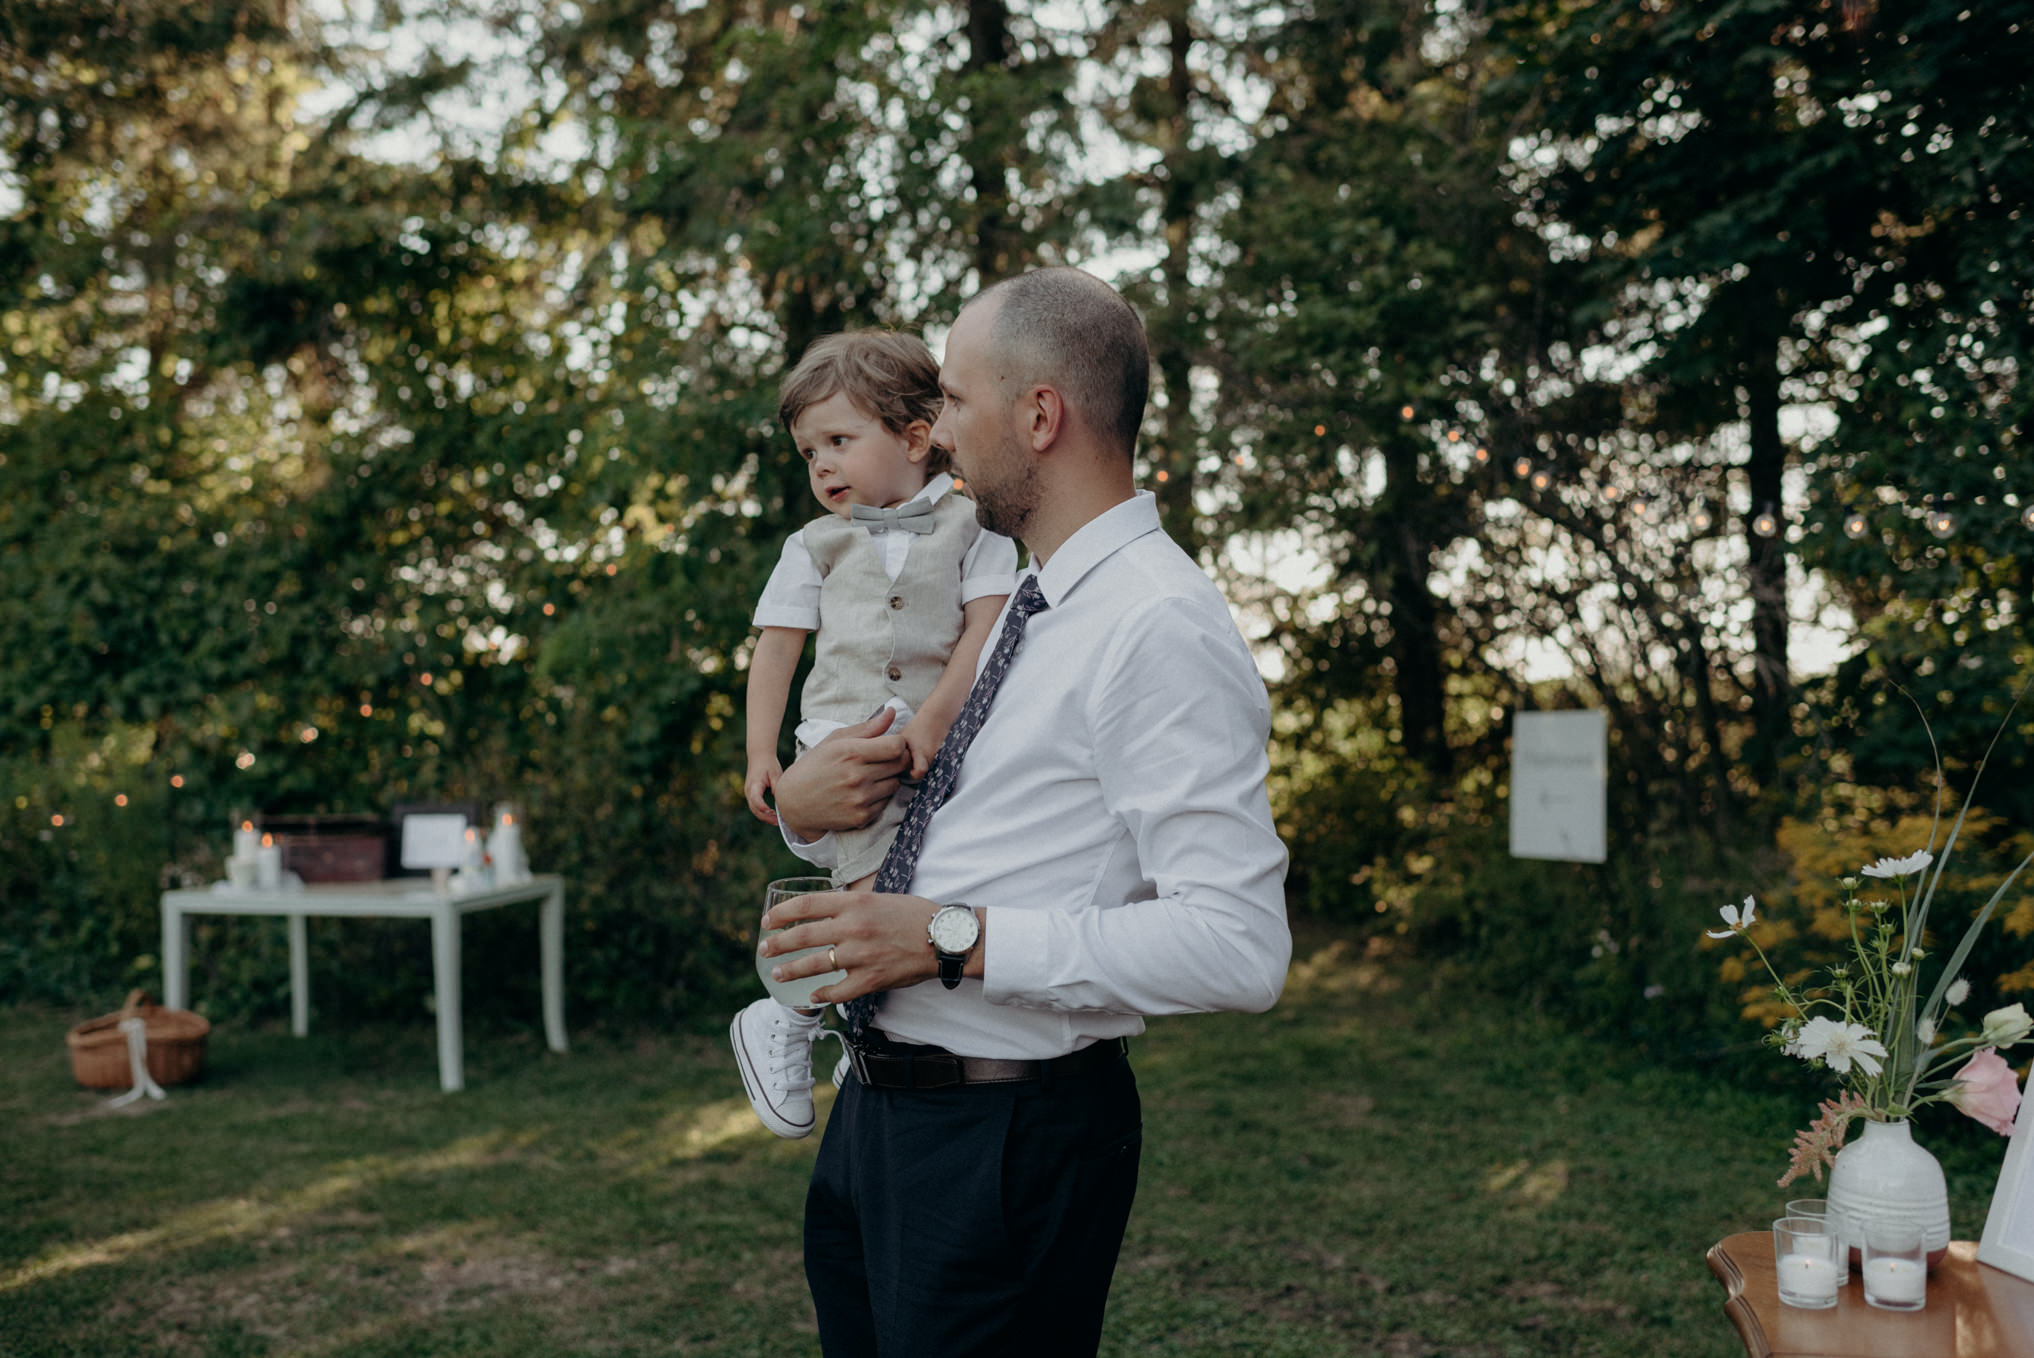 father carrying toddler son at wedding reception outside